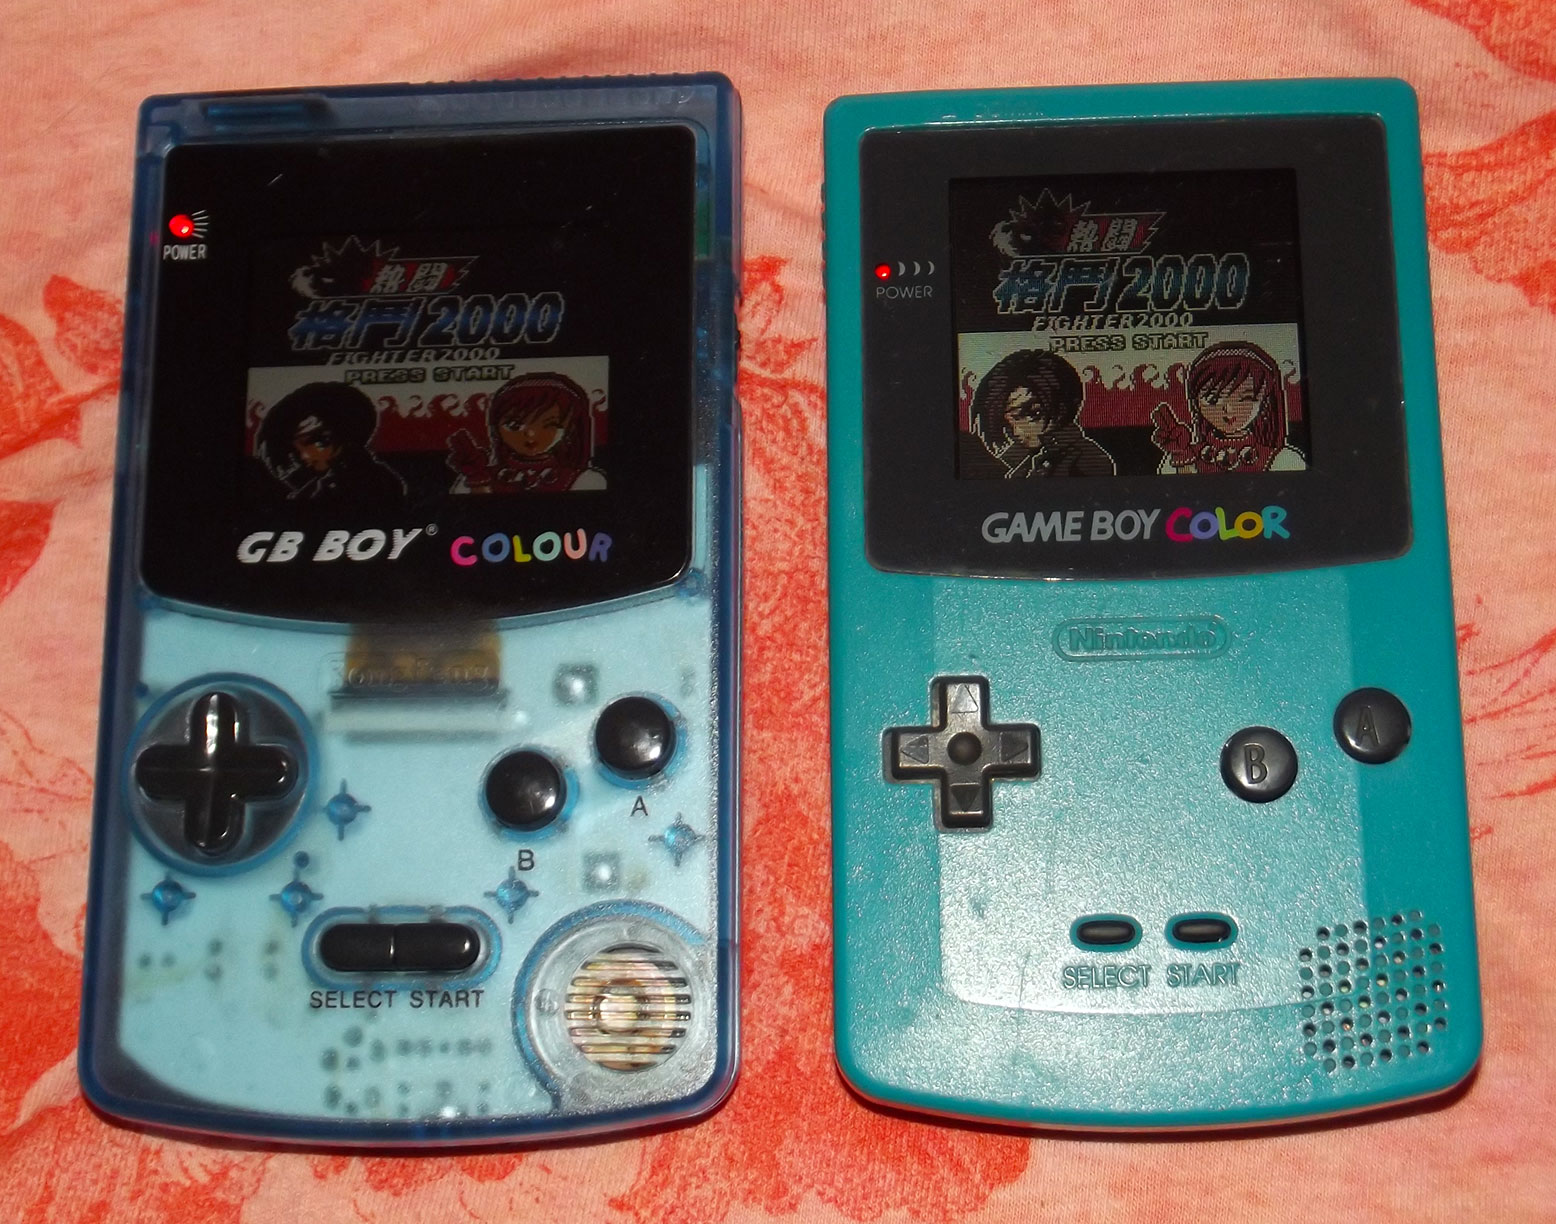 Gameboy color palettes - Here It Is Next To A Real Gbc The Camera Flash Makes Both Screens Look Pretty Much The Same Which Really Really Doesn T Do The Gbbc Justice